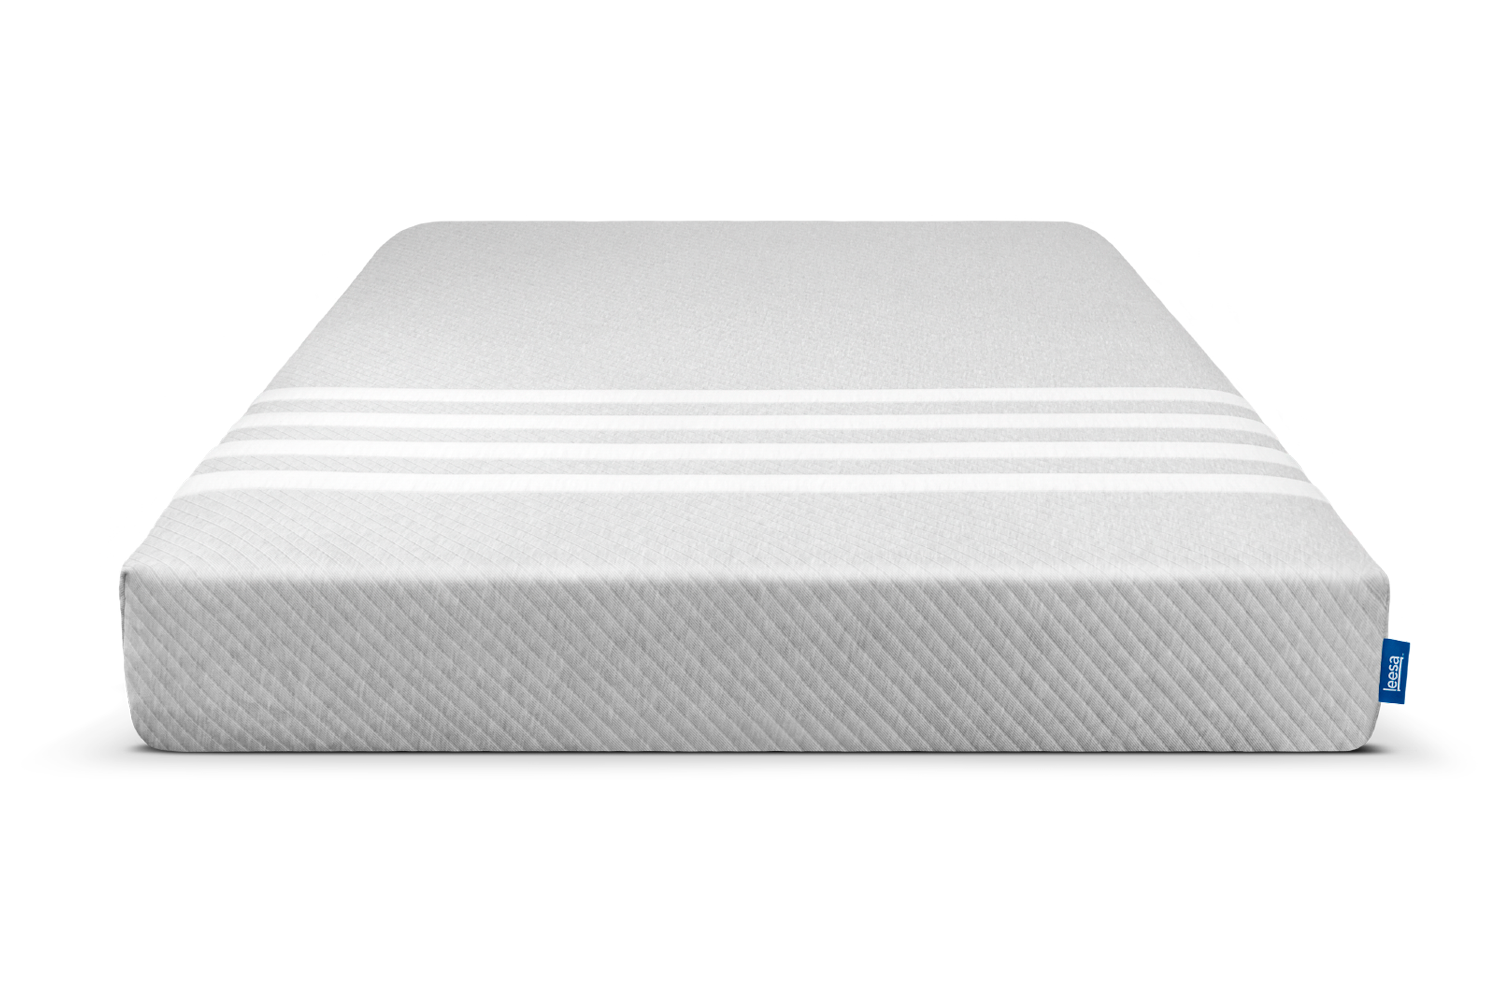 Memory Foam Mattress Cooling Supportive Comfortable Leesa Leesa Mattress Mattress Memory Foam Mattress